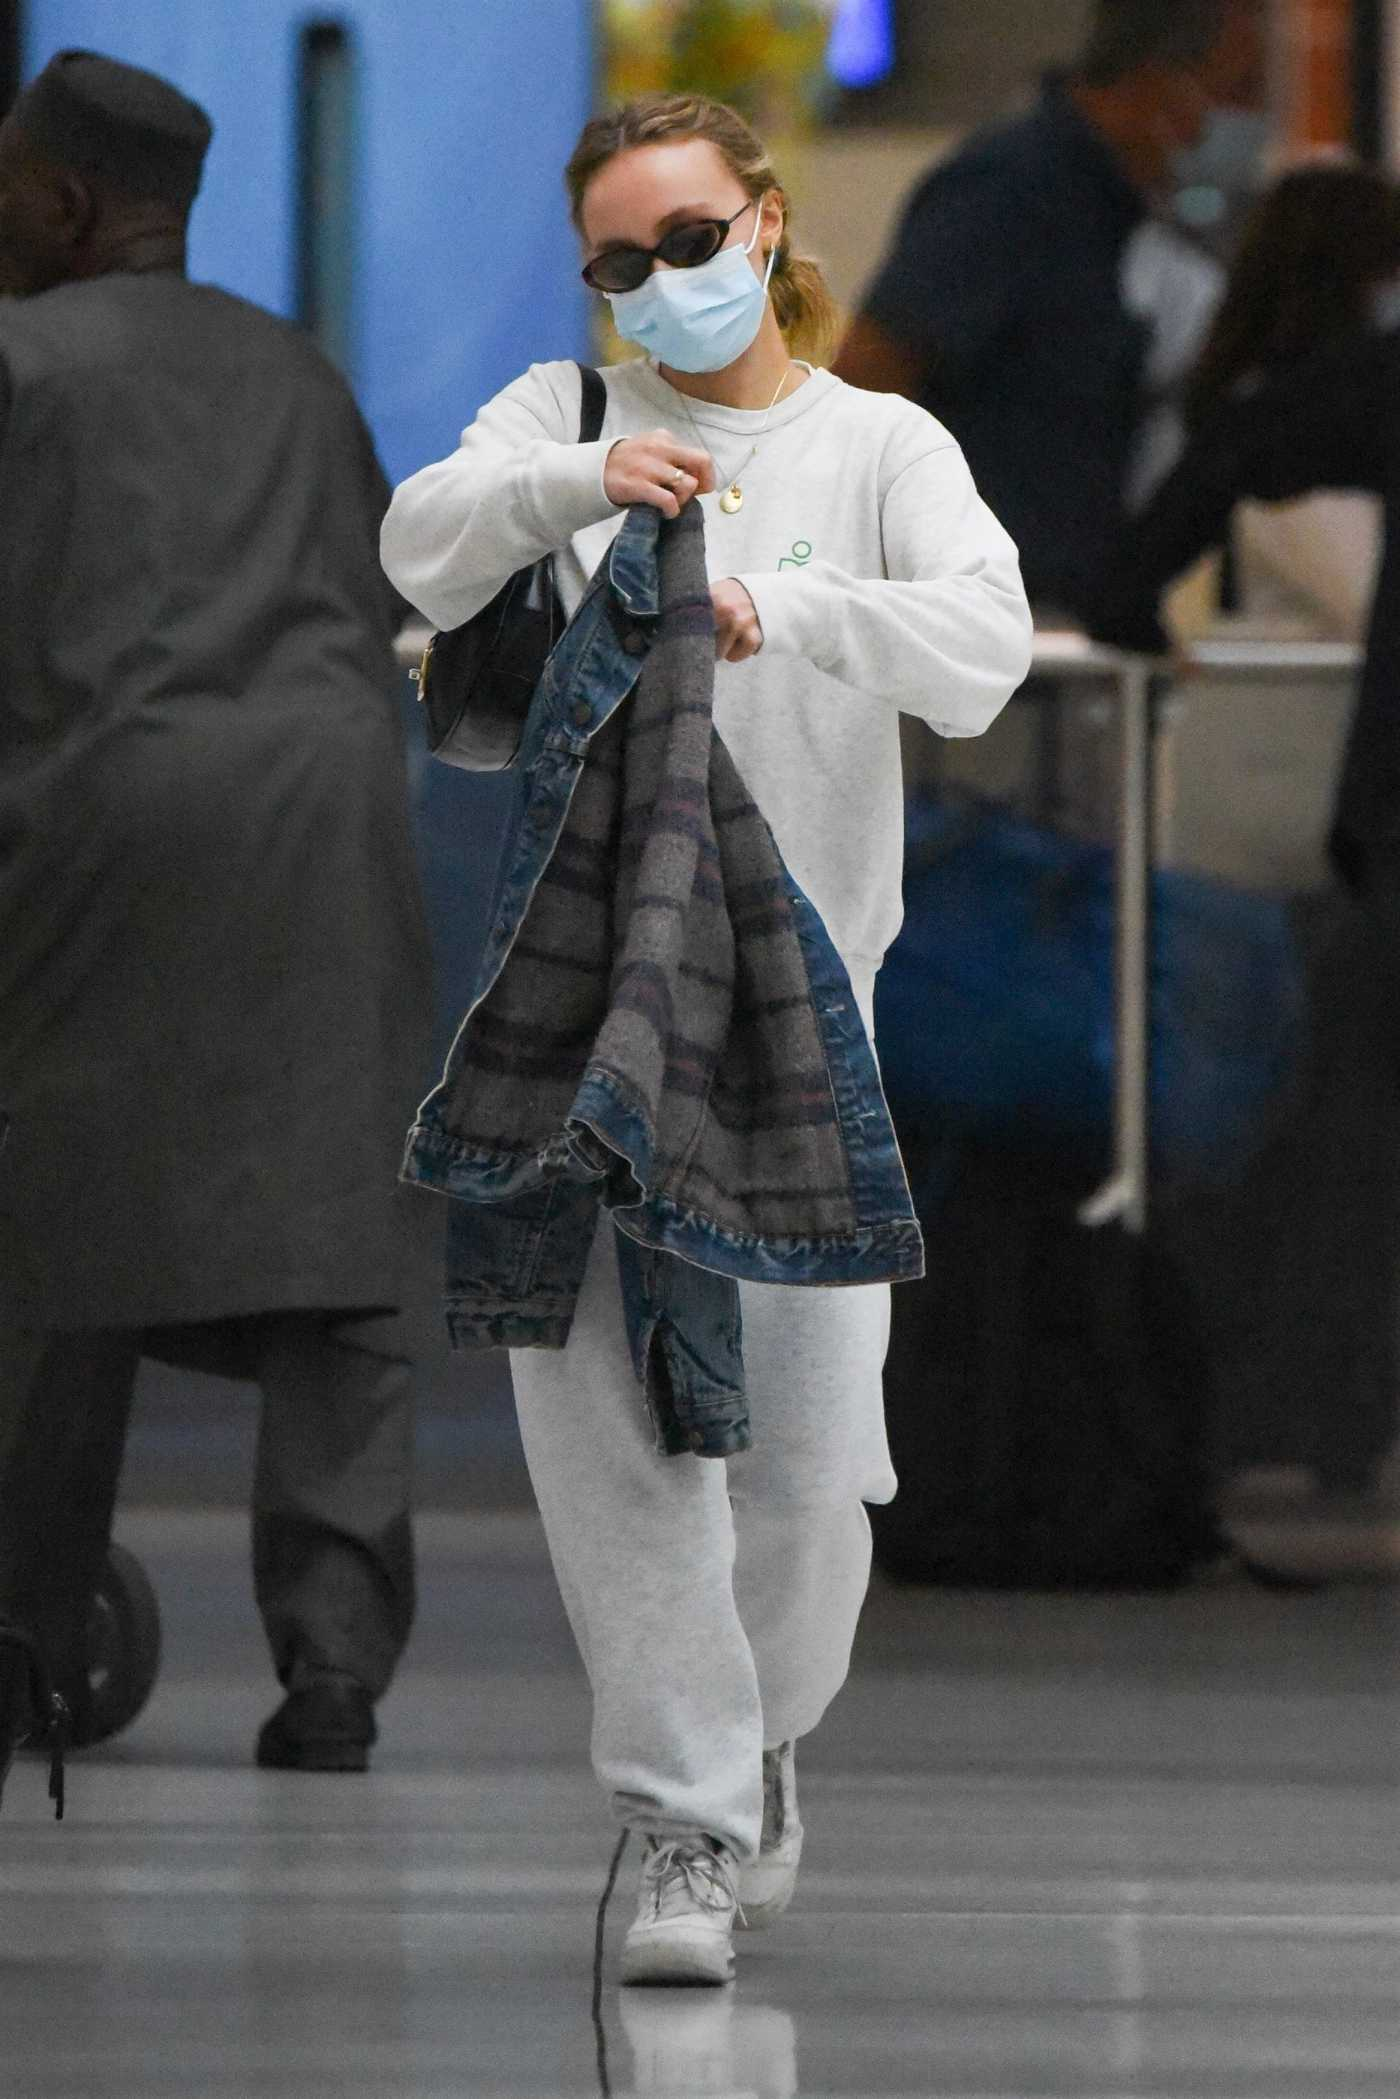 Lily-Rose Depp in a Grey Sweatsuit Arrives at JFK Airport in New York 09/01/2021